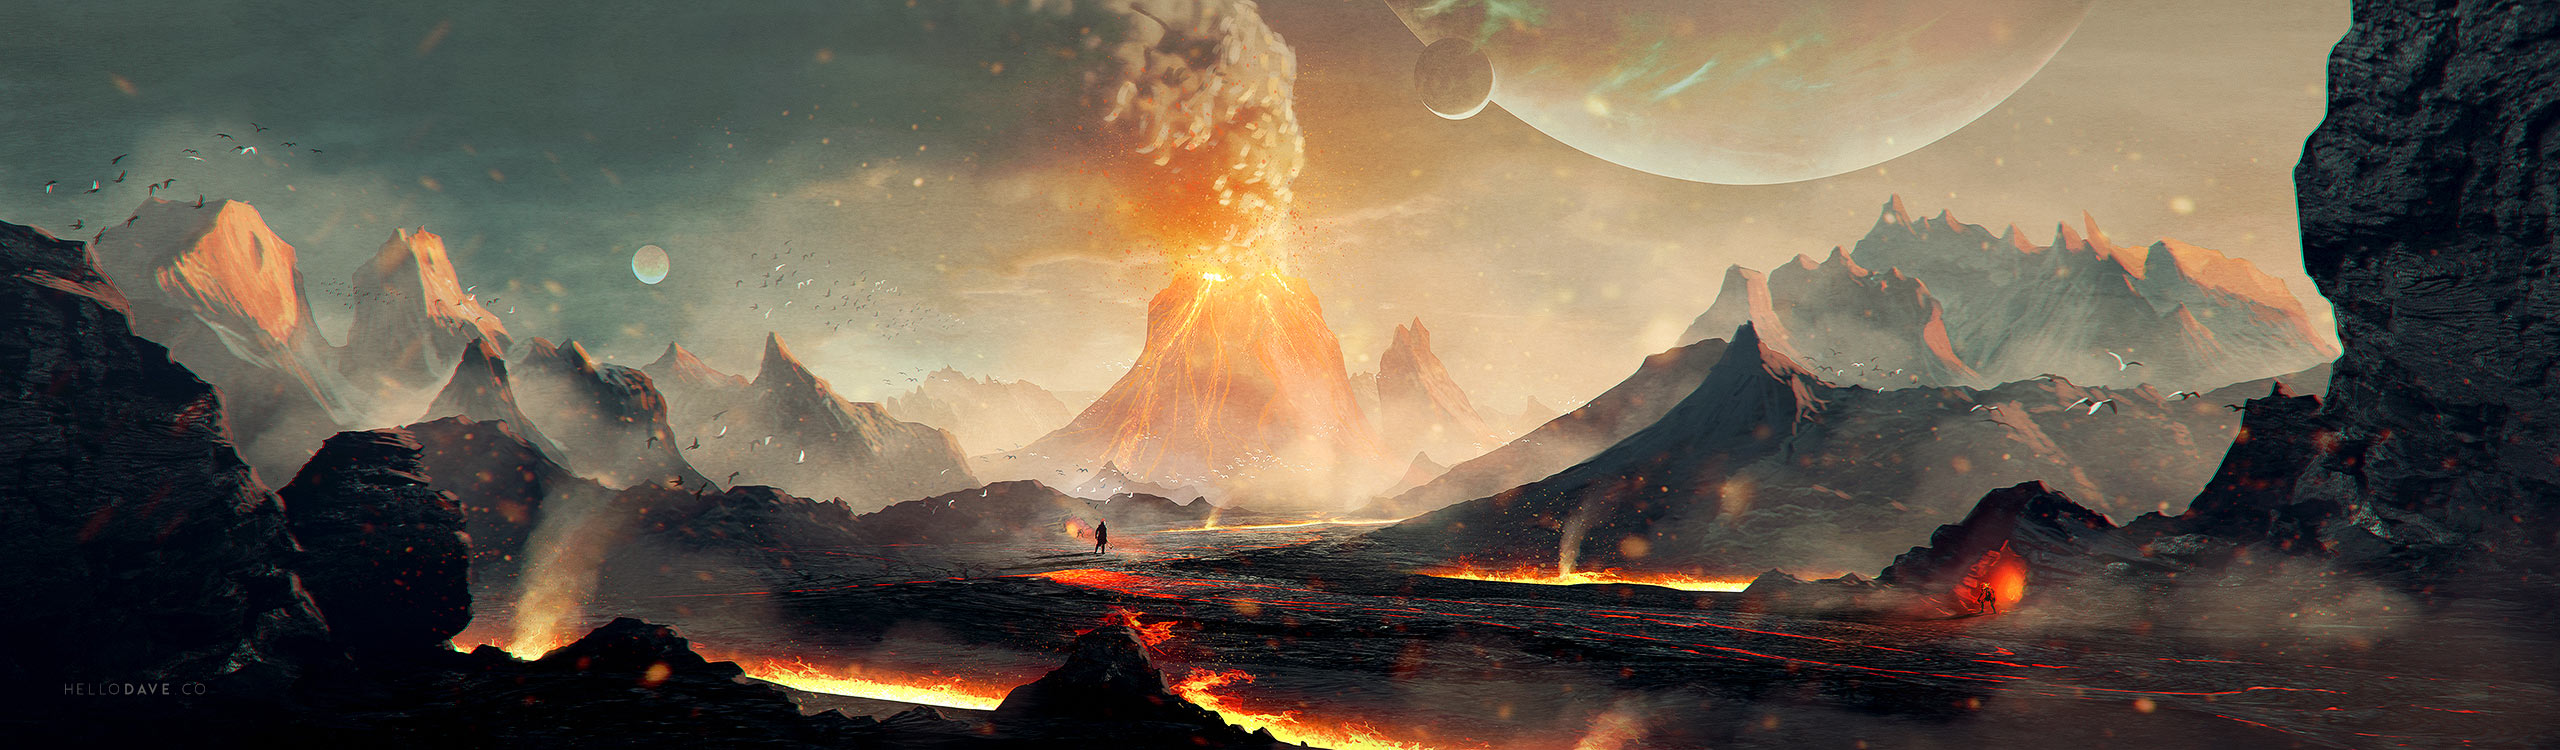 Cpts_Volcanic_land_test_01_2560px